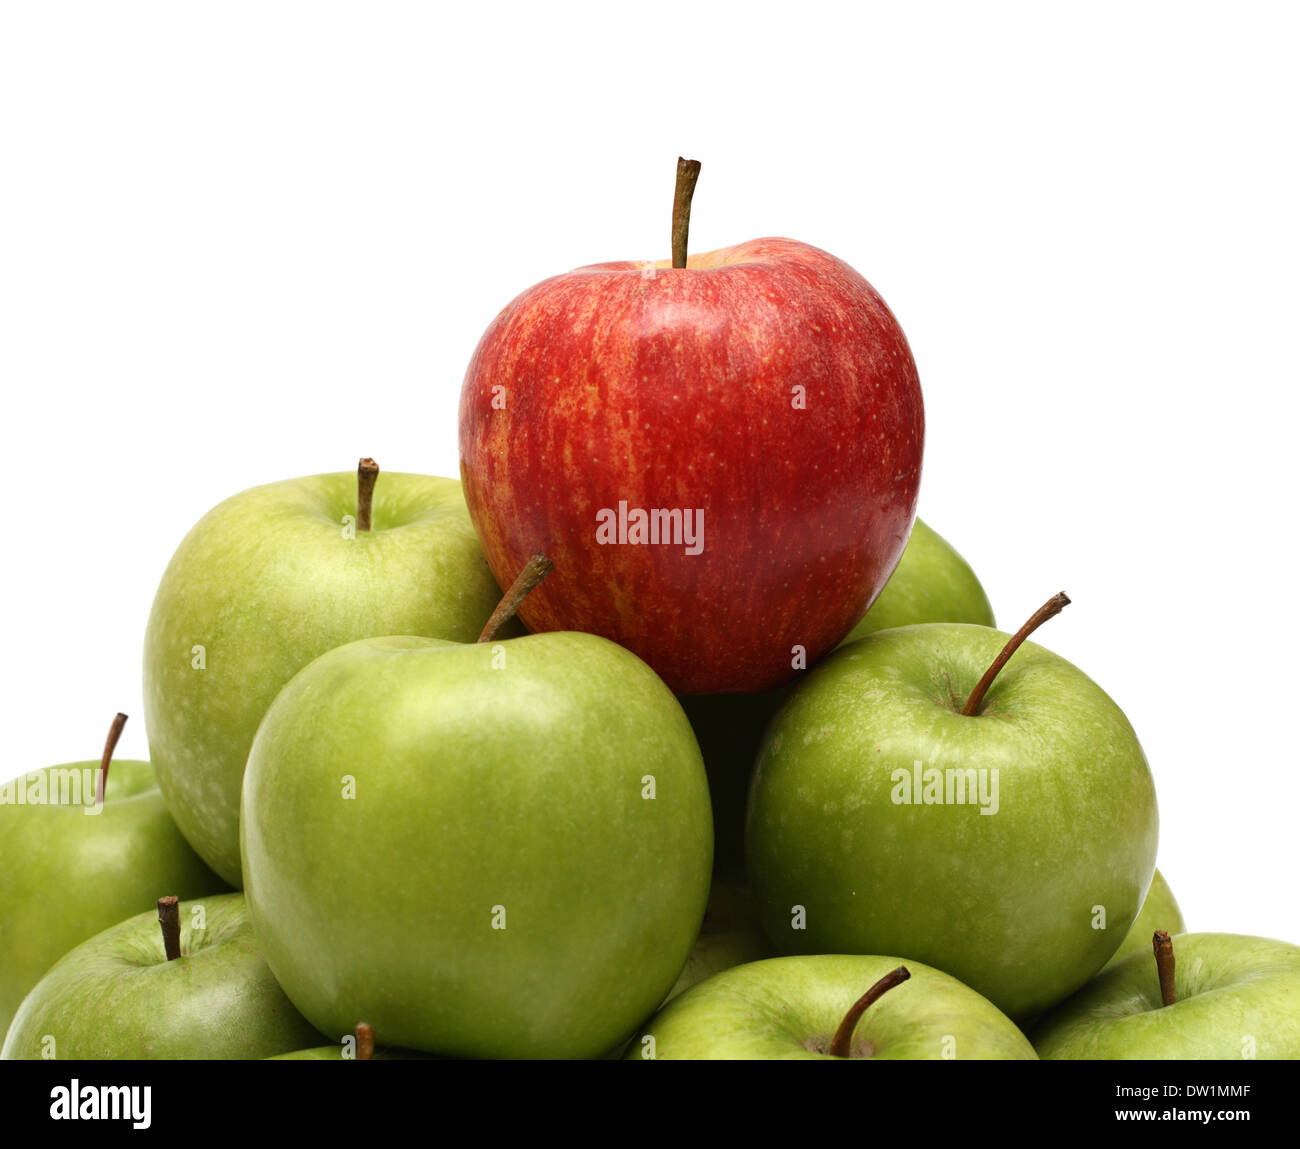 domination concepts with apples - Stock Image